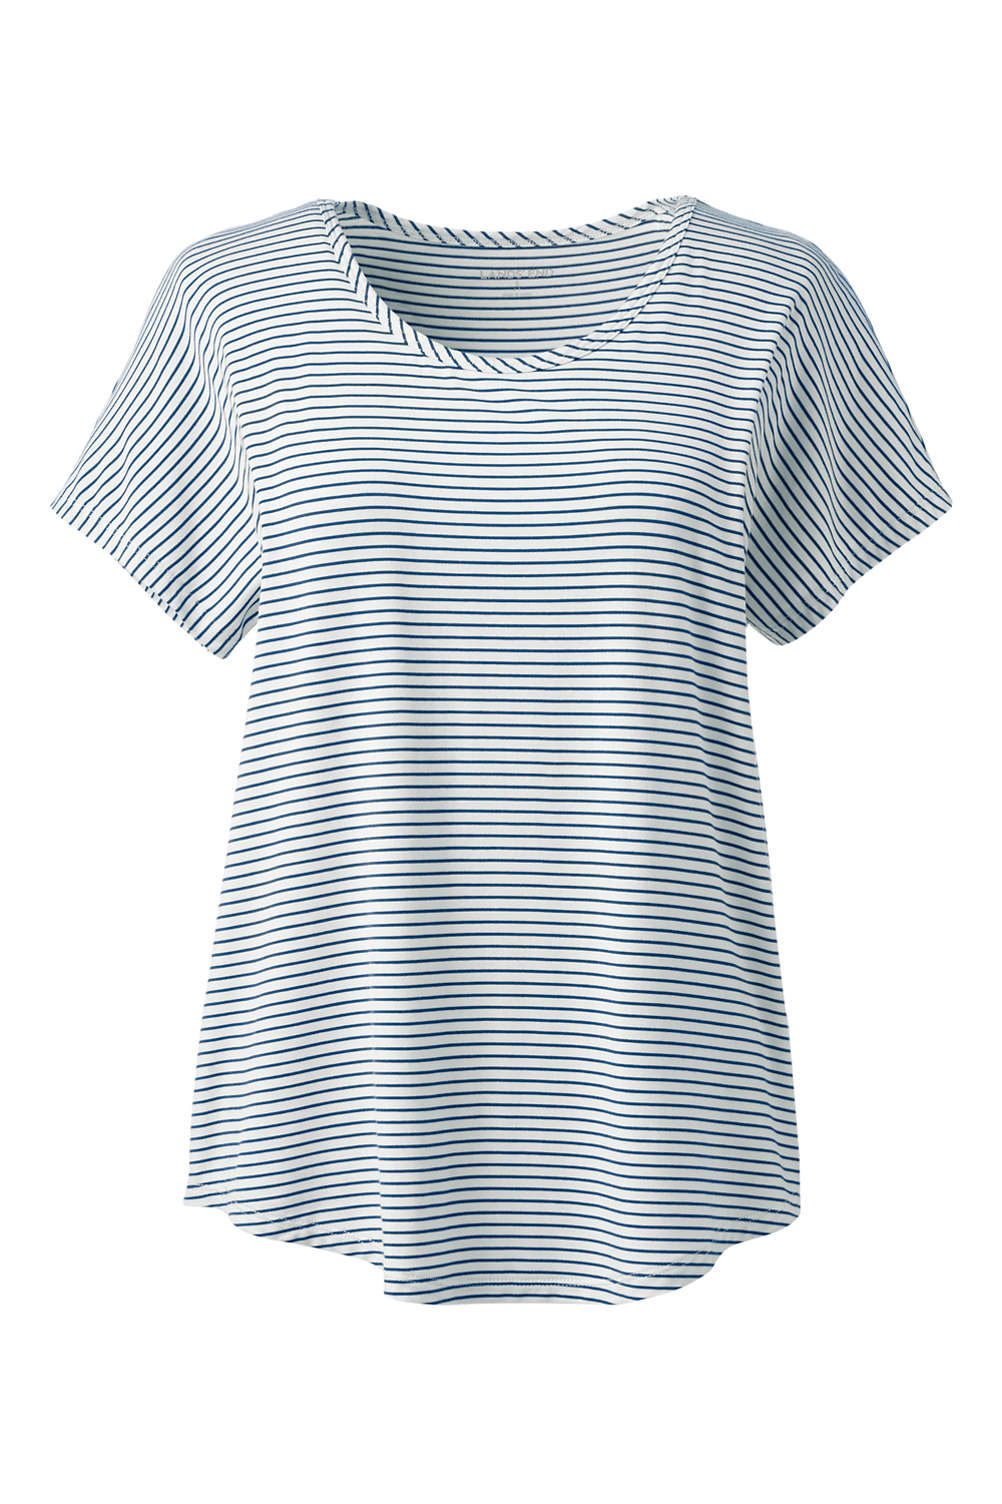 84f78274207 Women s Plus Size Jersey U-neck T-shirt from Lands  End